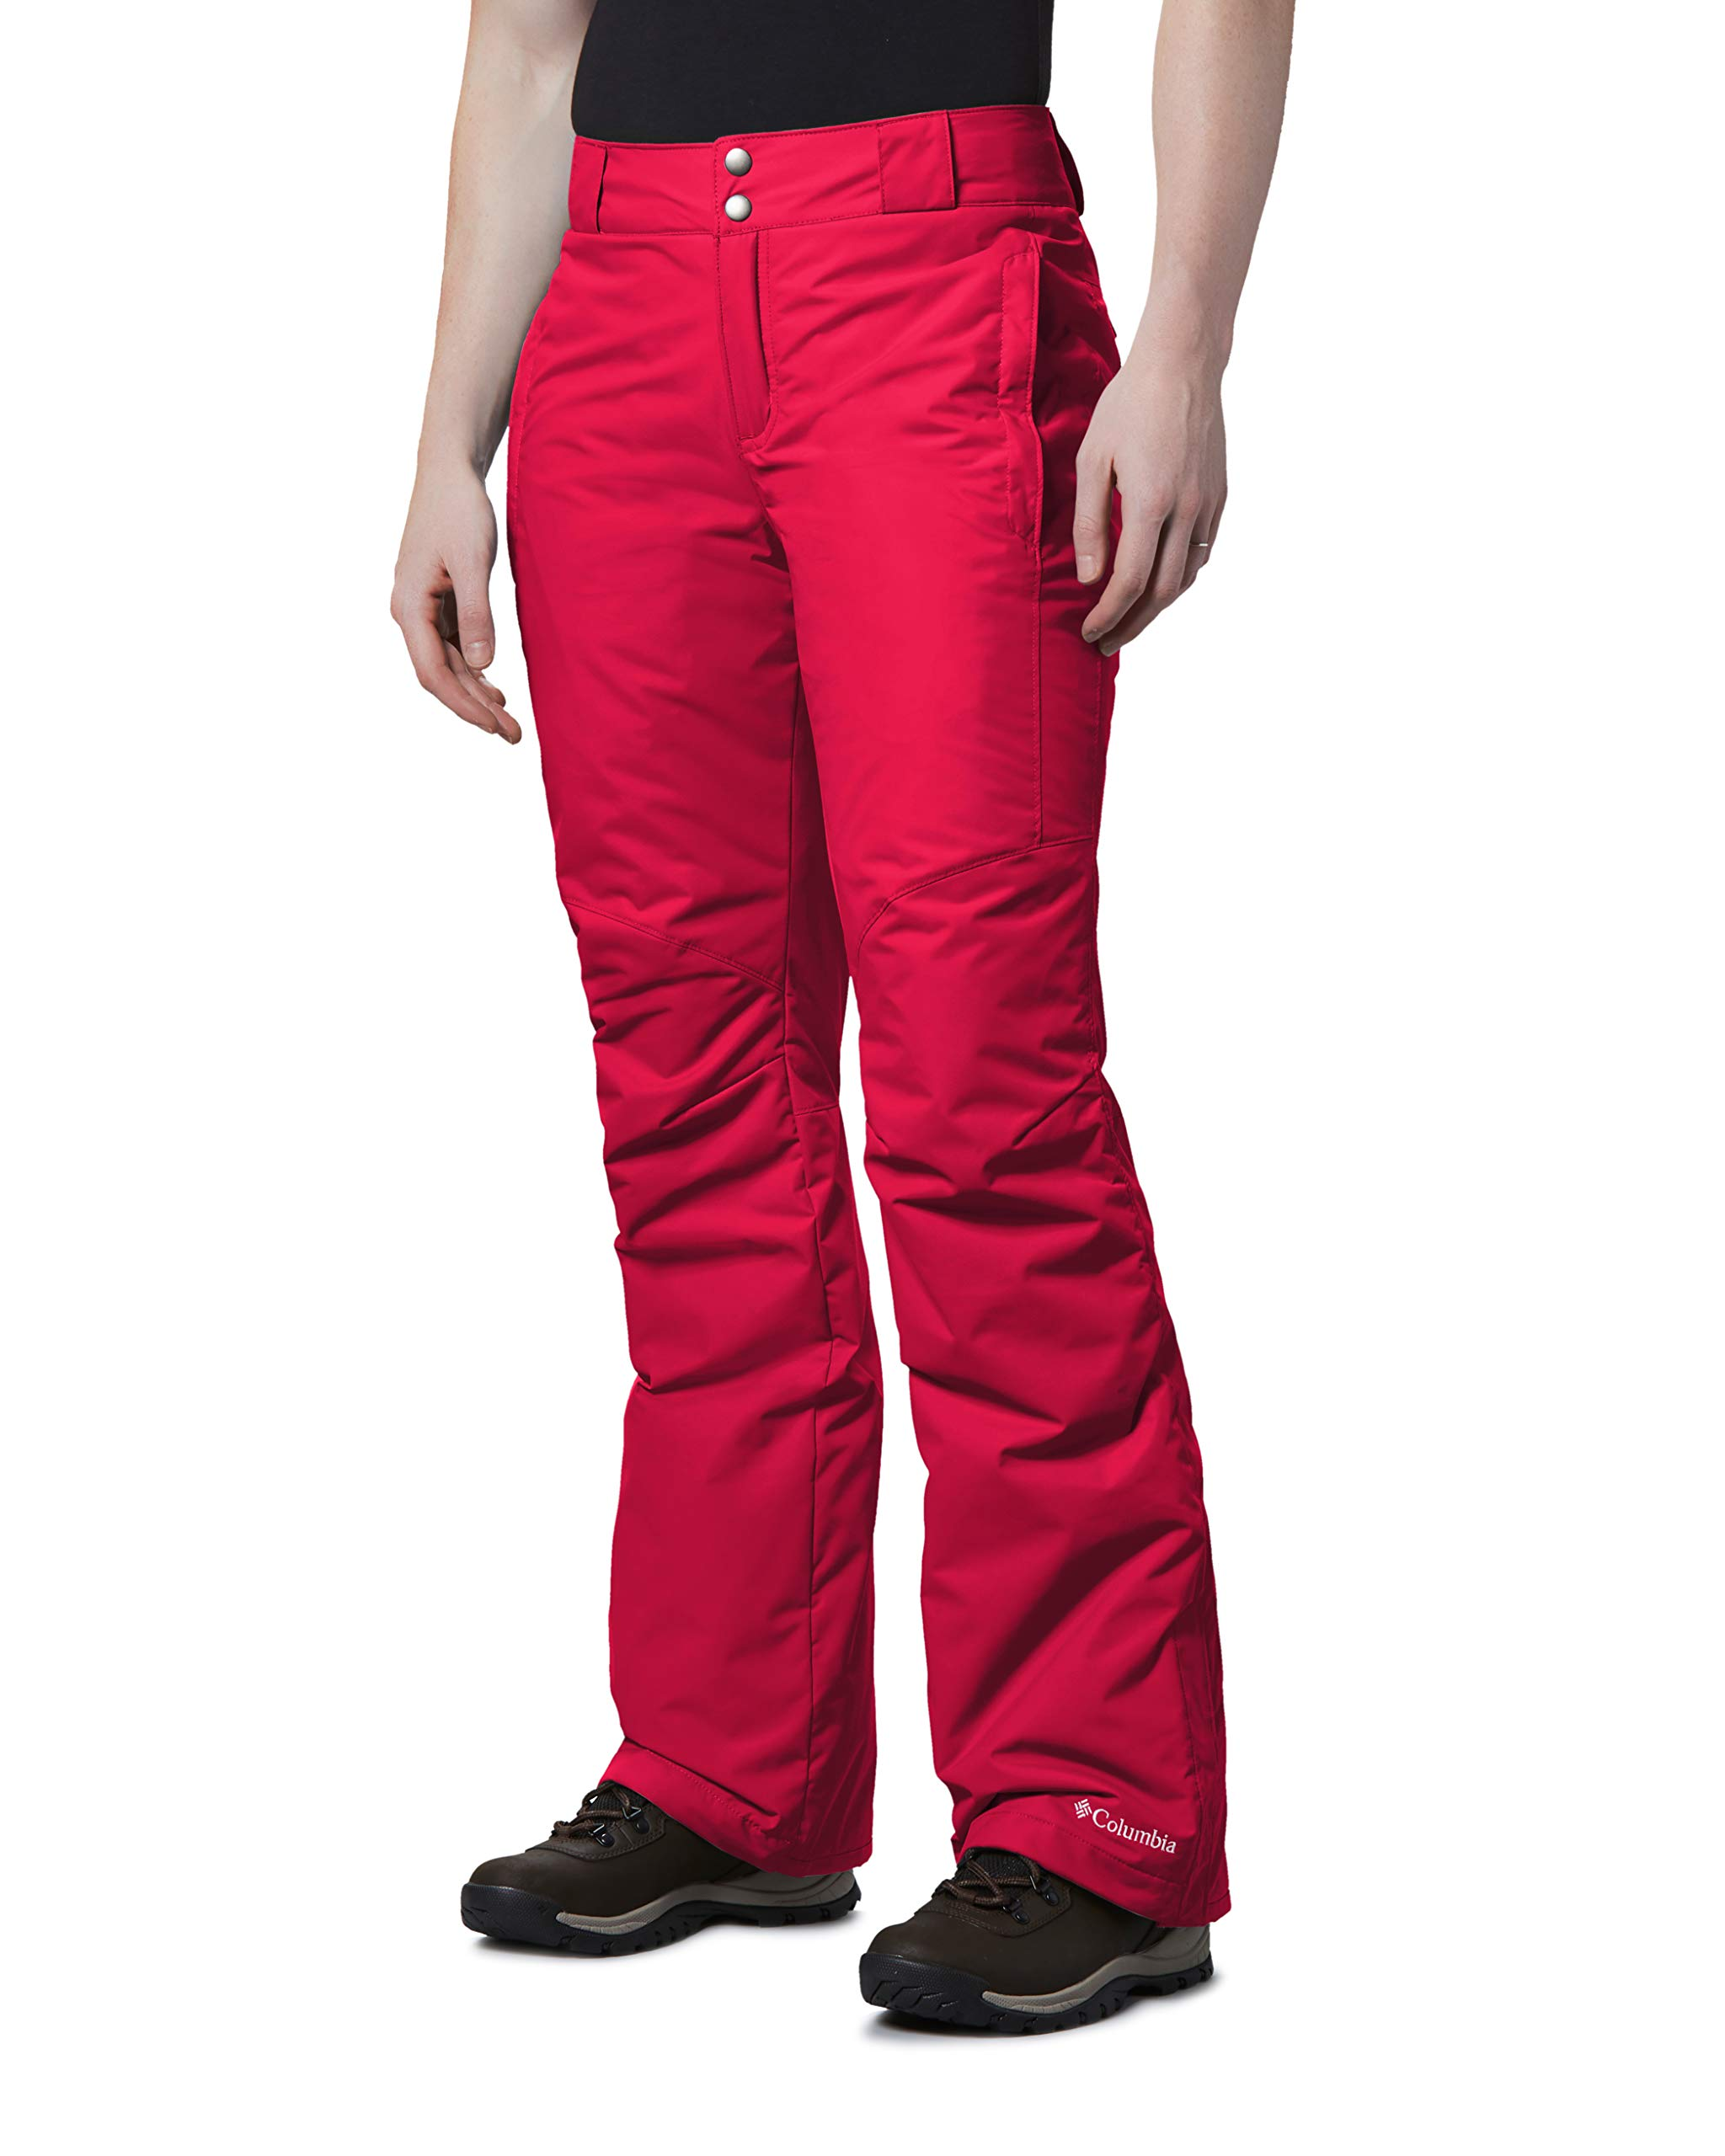 Columbia Bugaboo Ii Pants, Small x Regular, Red Mercury